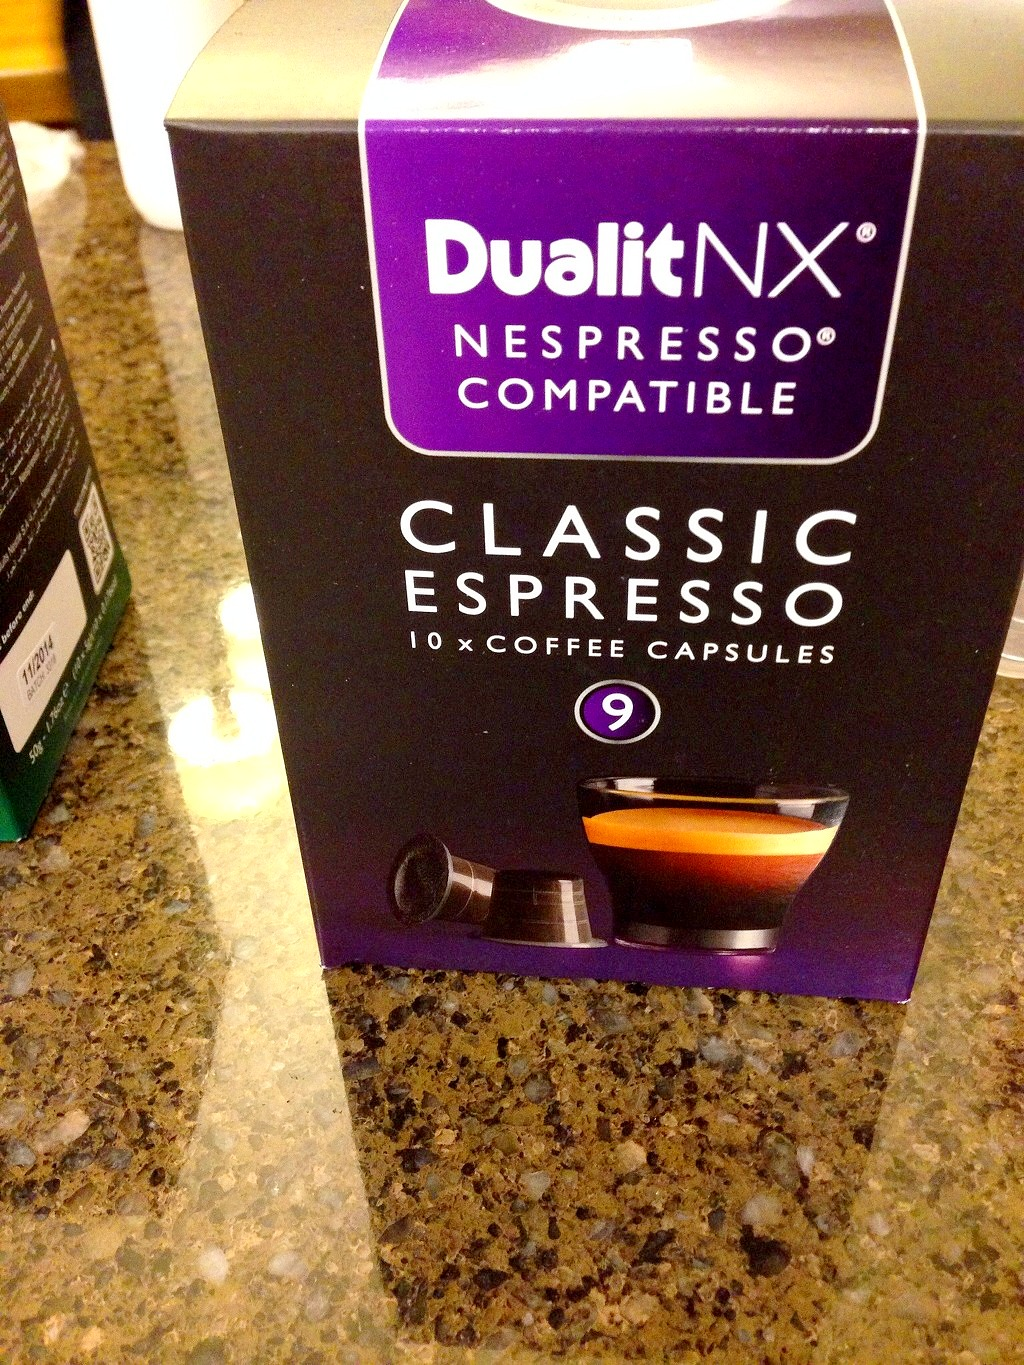 Are Dualit Nx Coffee Capsules Compatable With Nespresso Capsuales